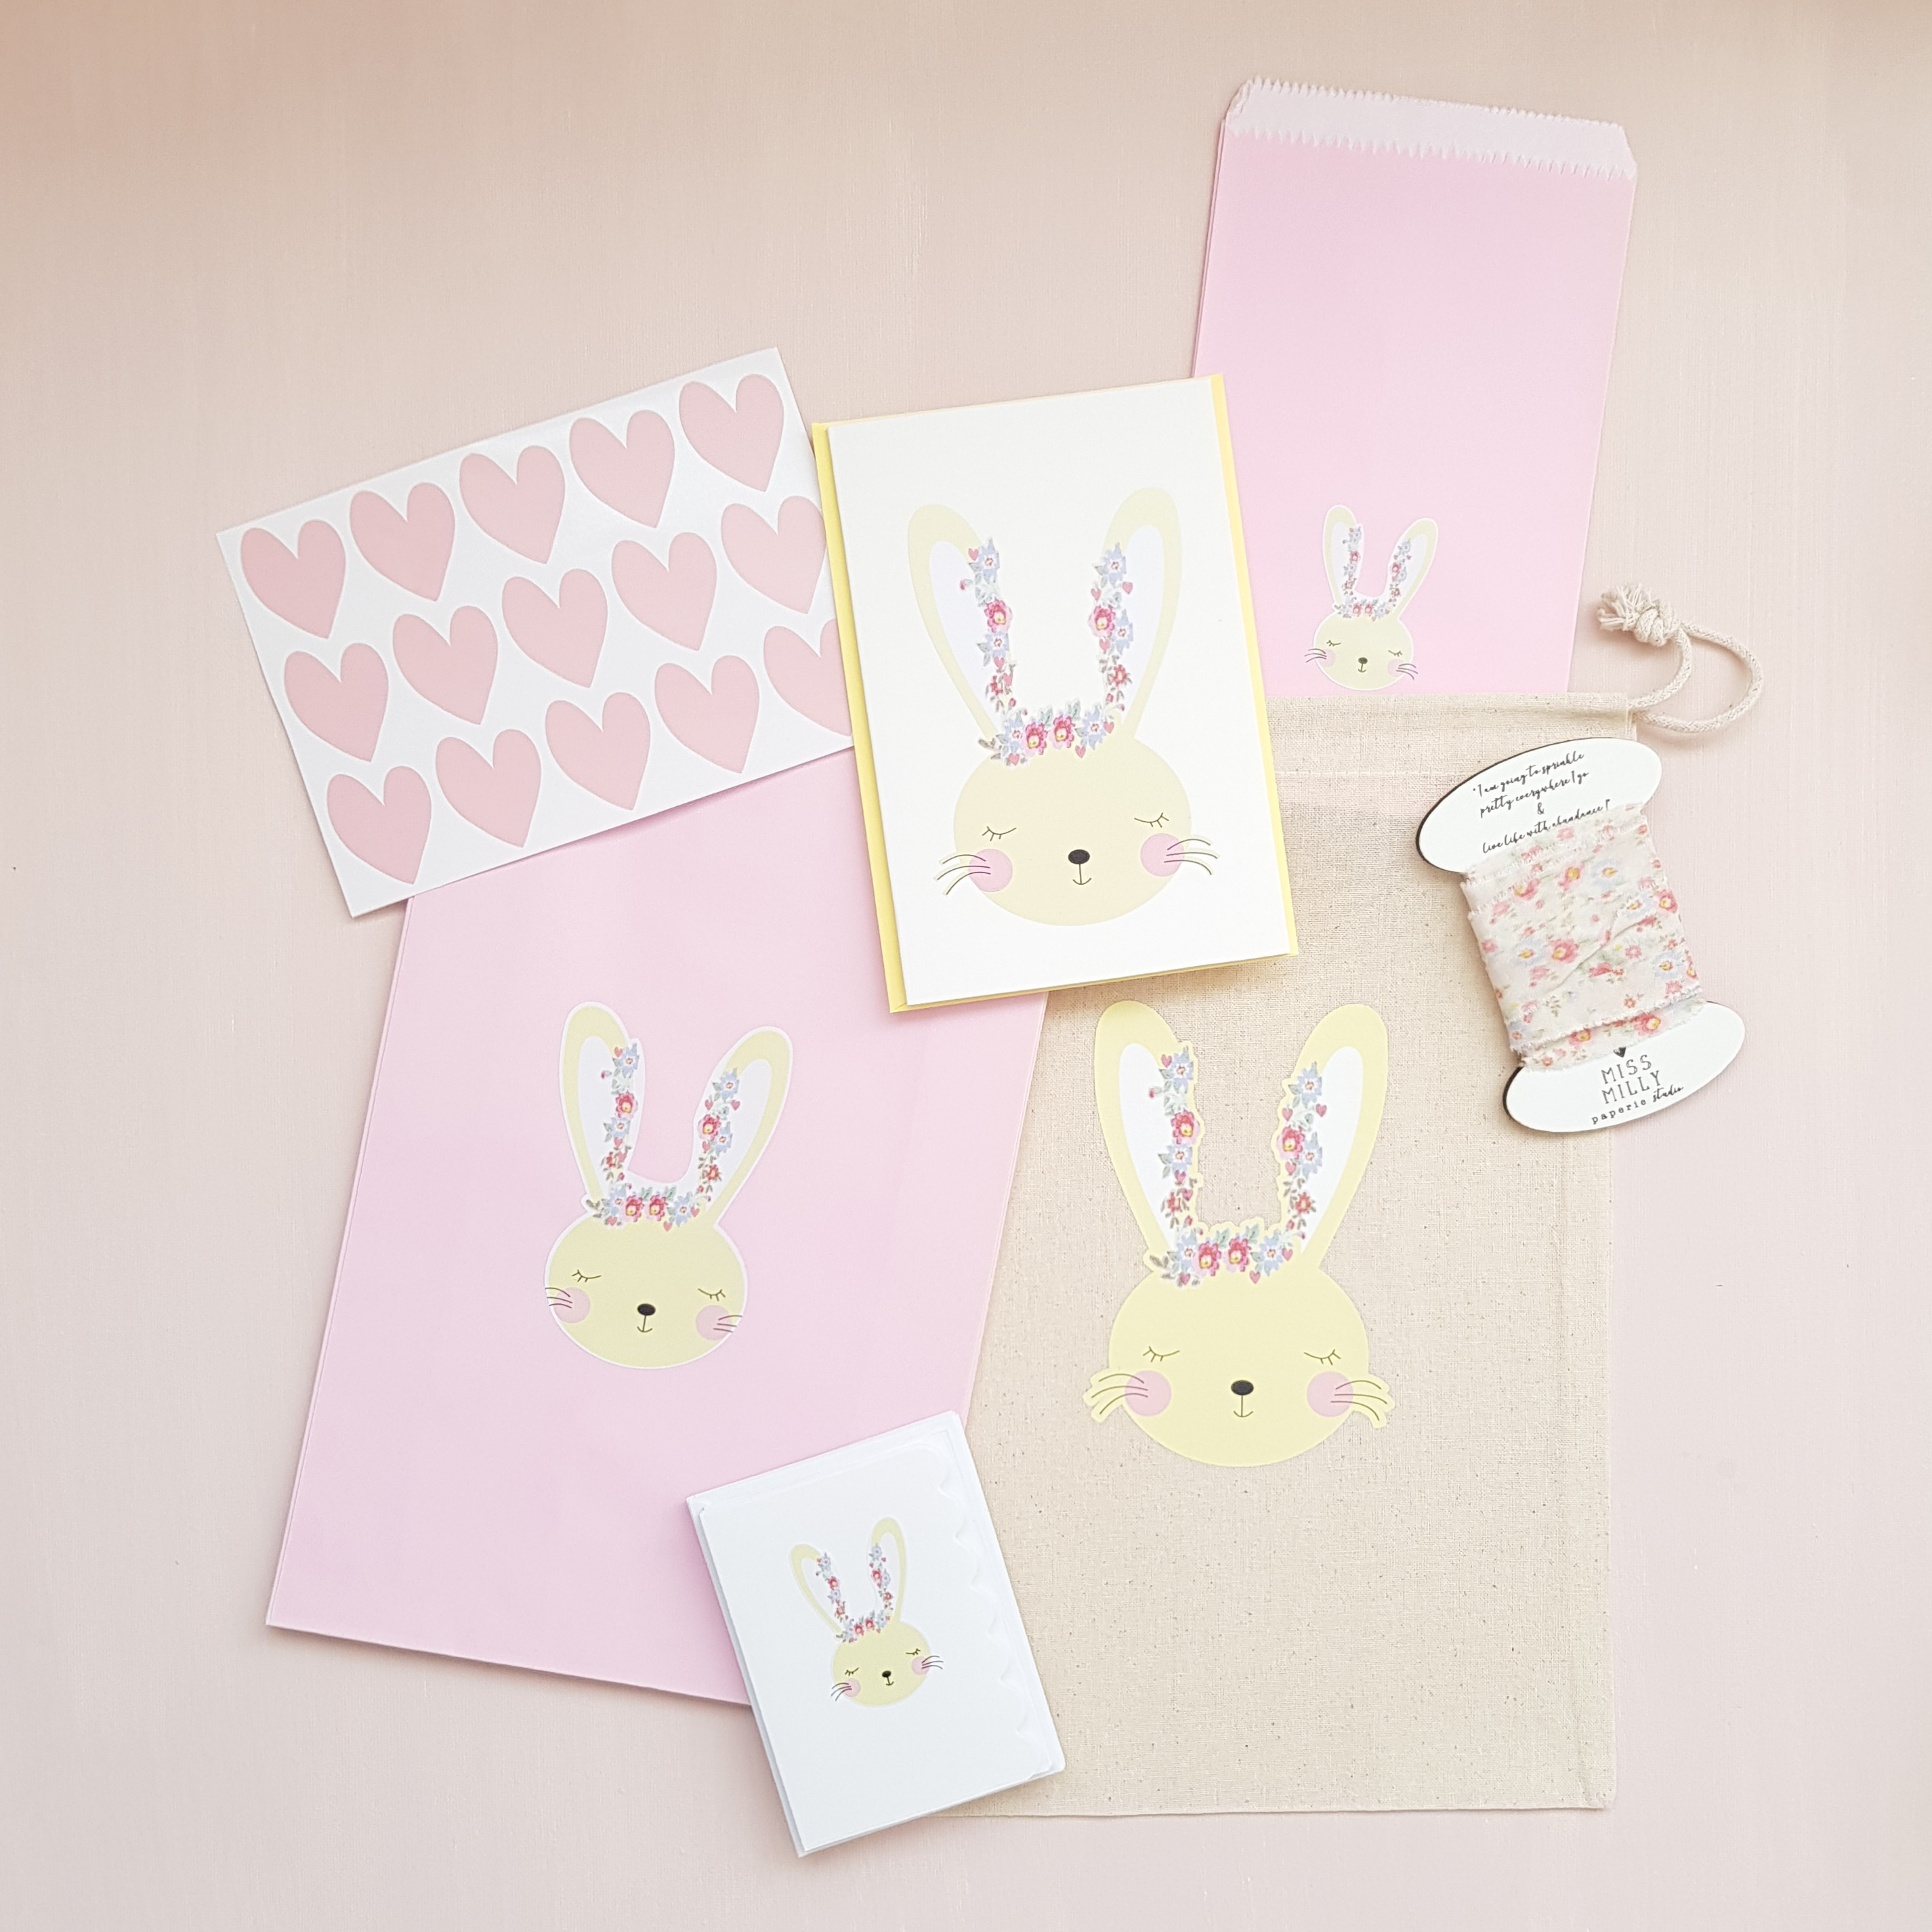 the pretty gift wrapping set